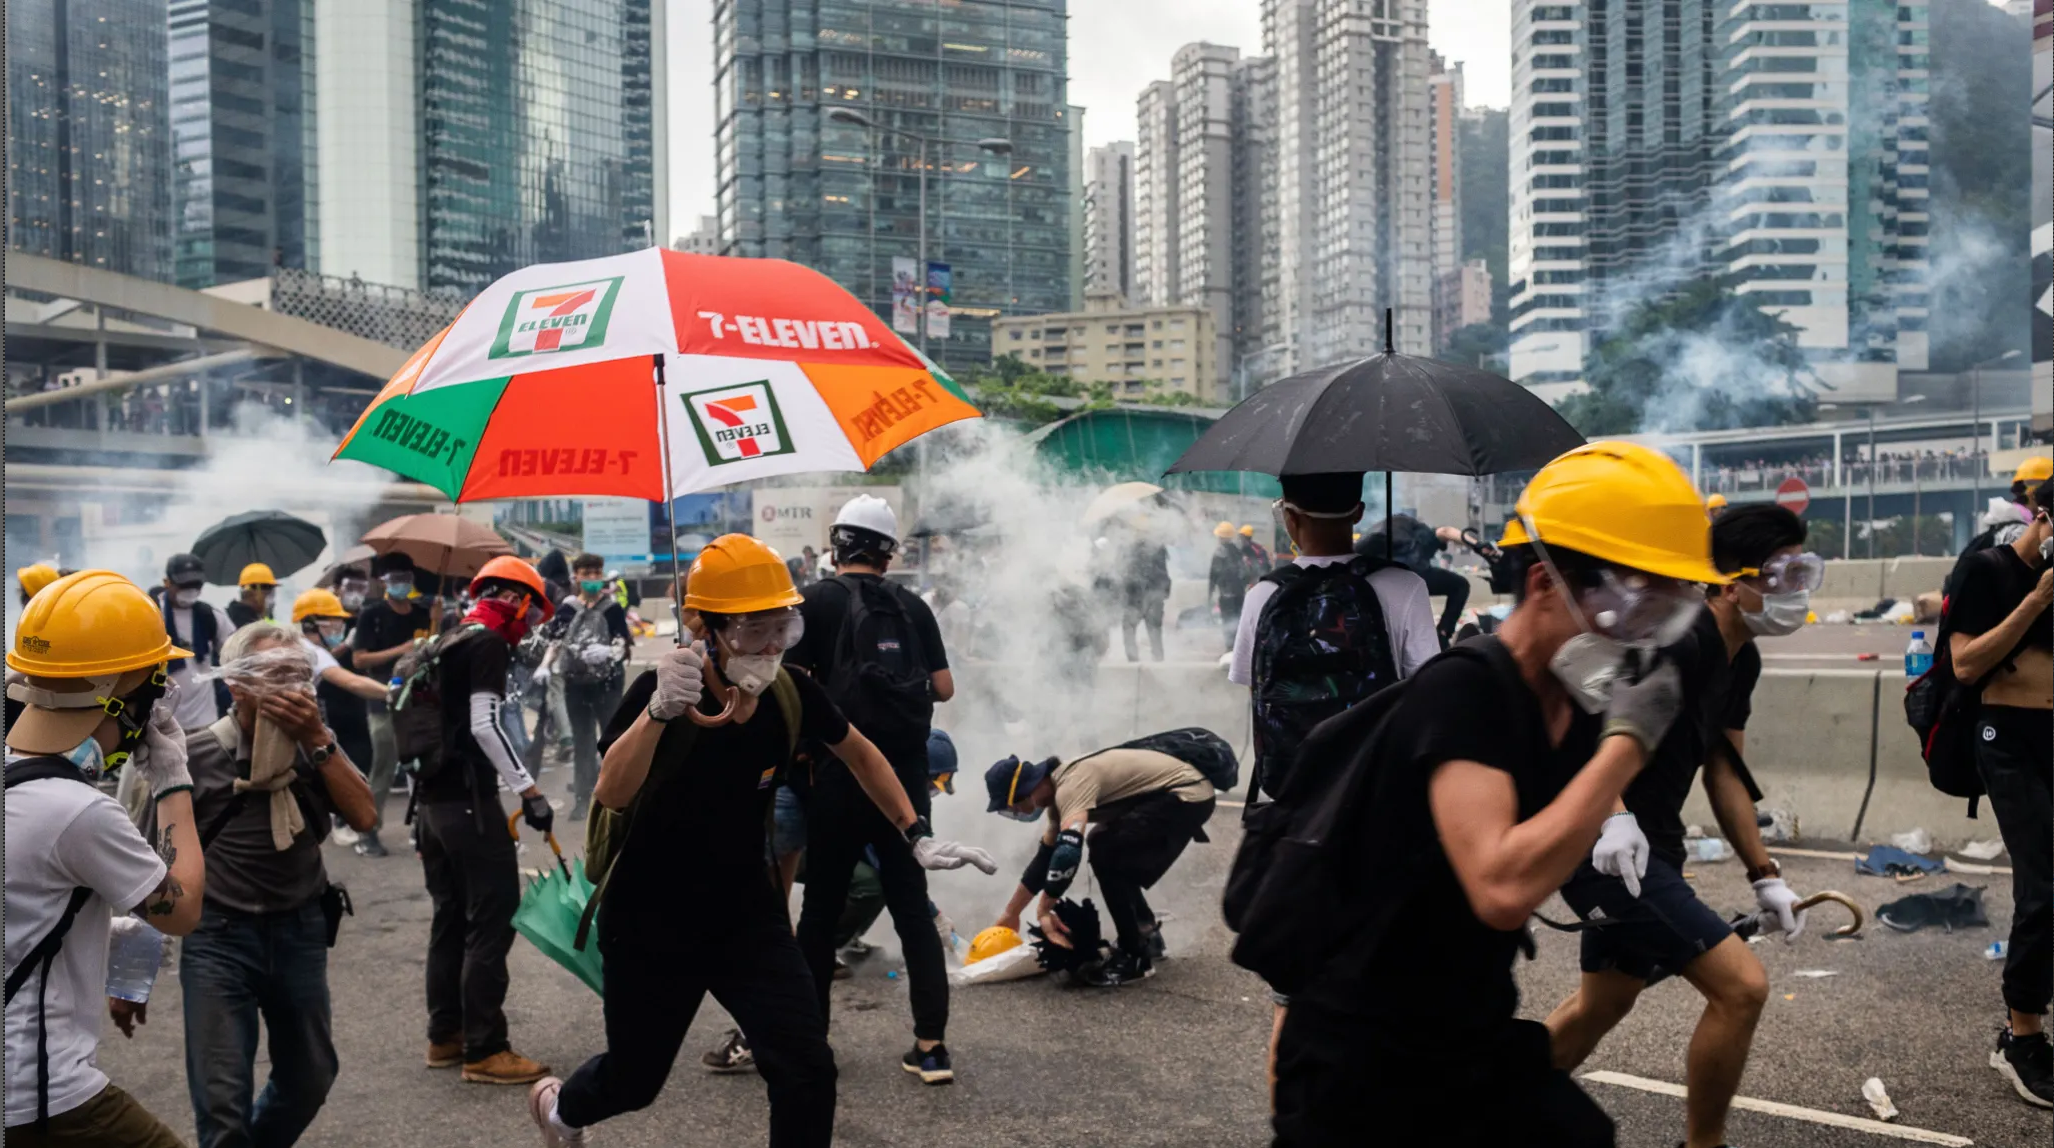 Demonstrators in Hong Kong disperse as the police fire tear gas. Credit:Bloomberg